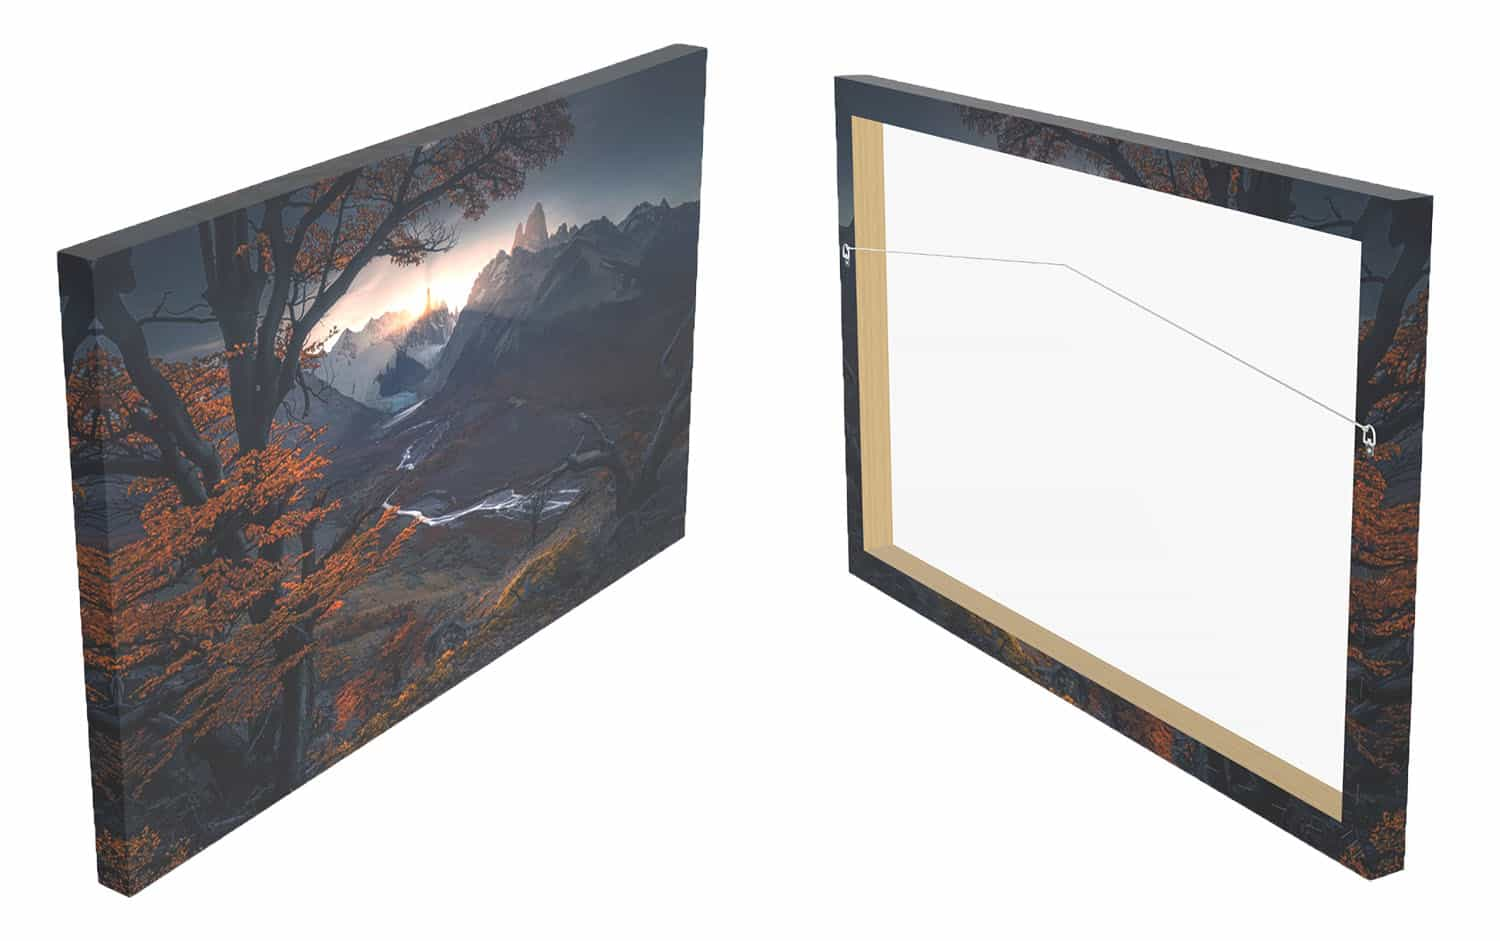 canvas-print-of-cerro-torre-at-sunset-during-autumn-material-front-and-back